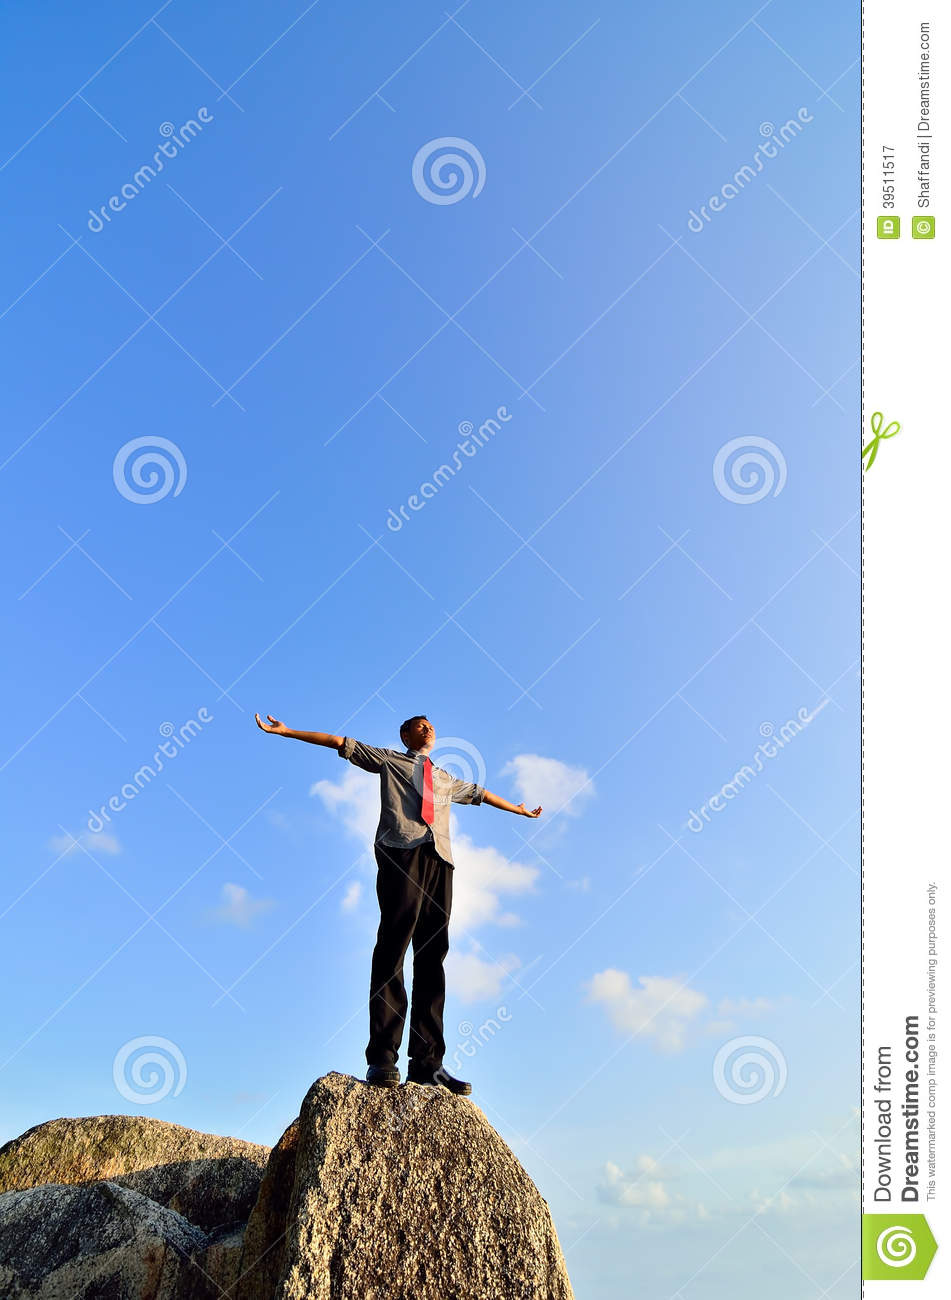 Man standing on the rock